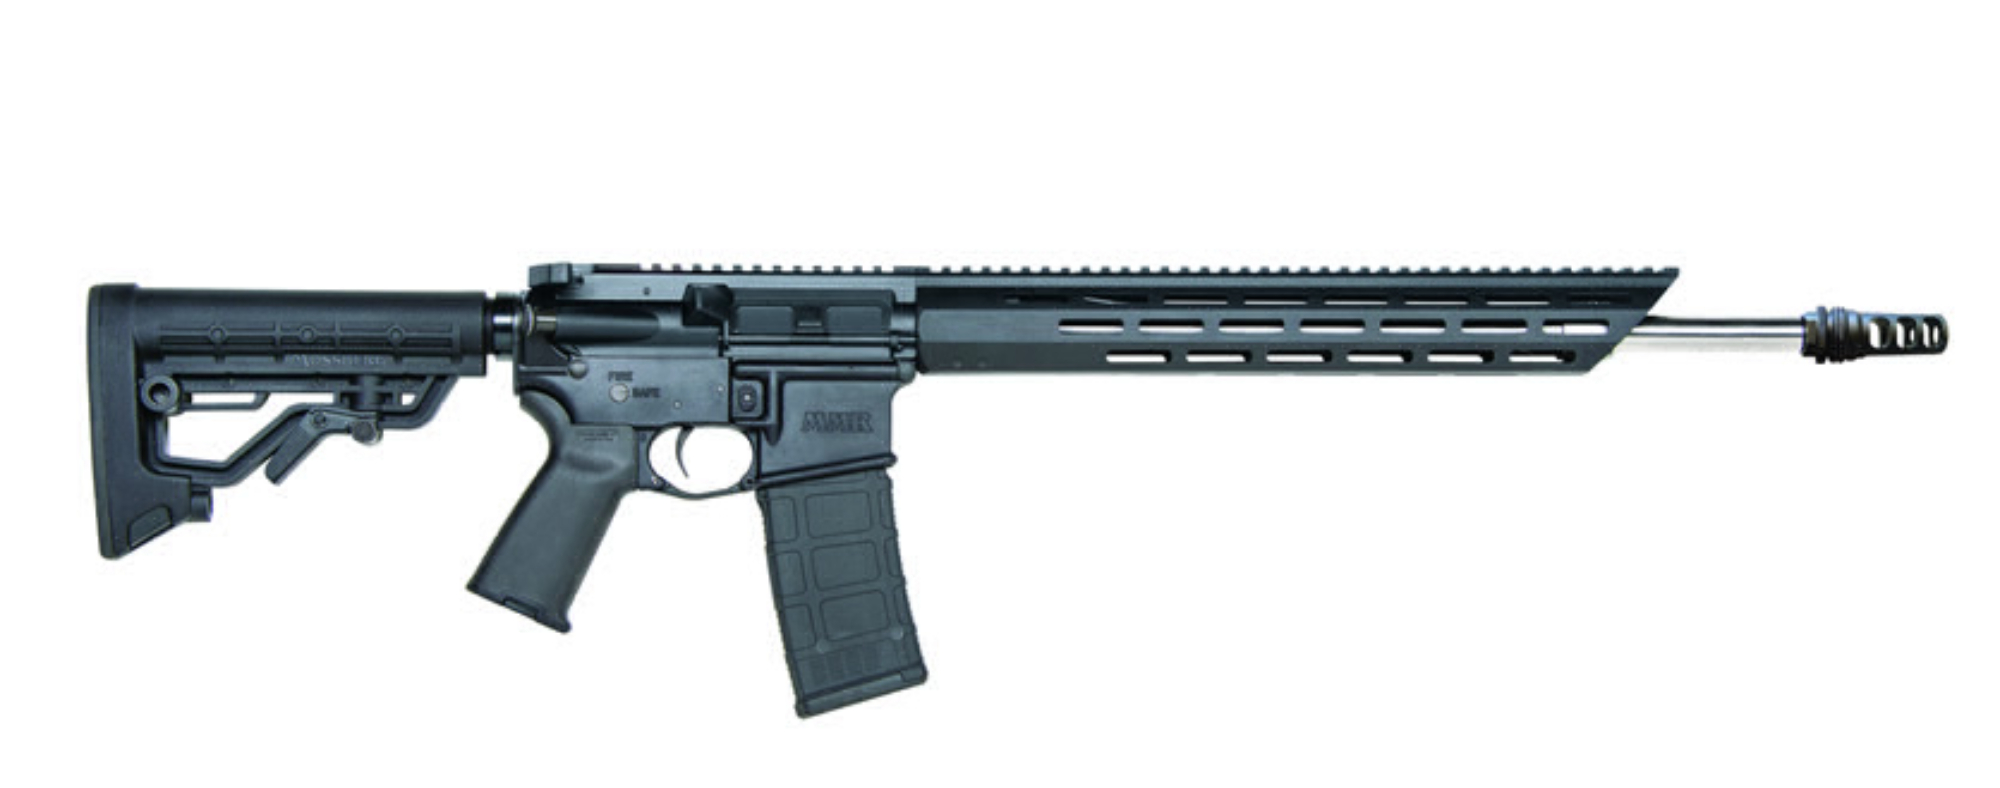 Mossberg Modern Rifle with the JM Pro Adjustable Match Trigger